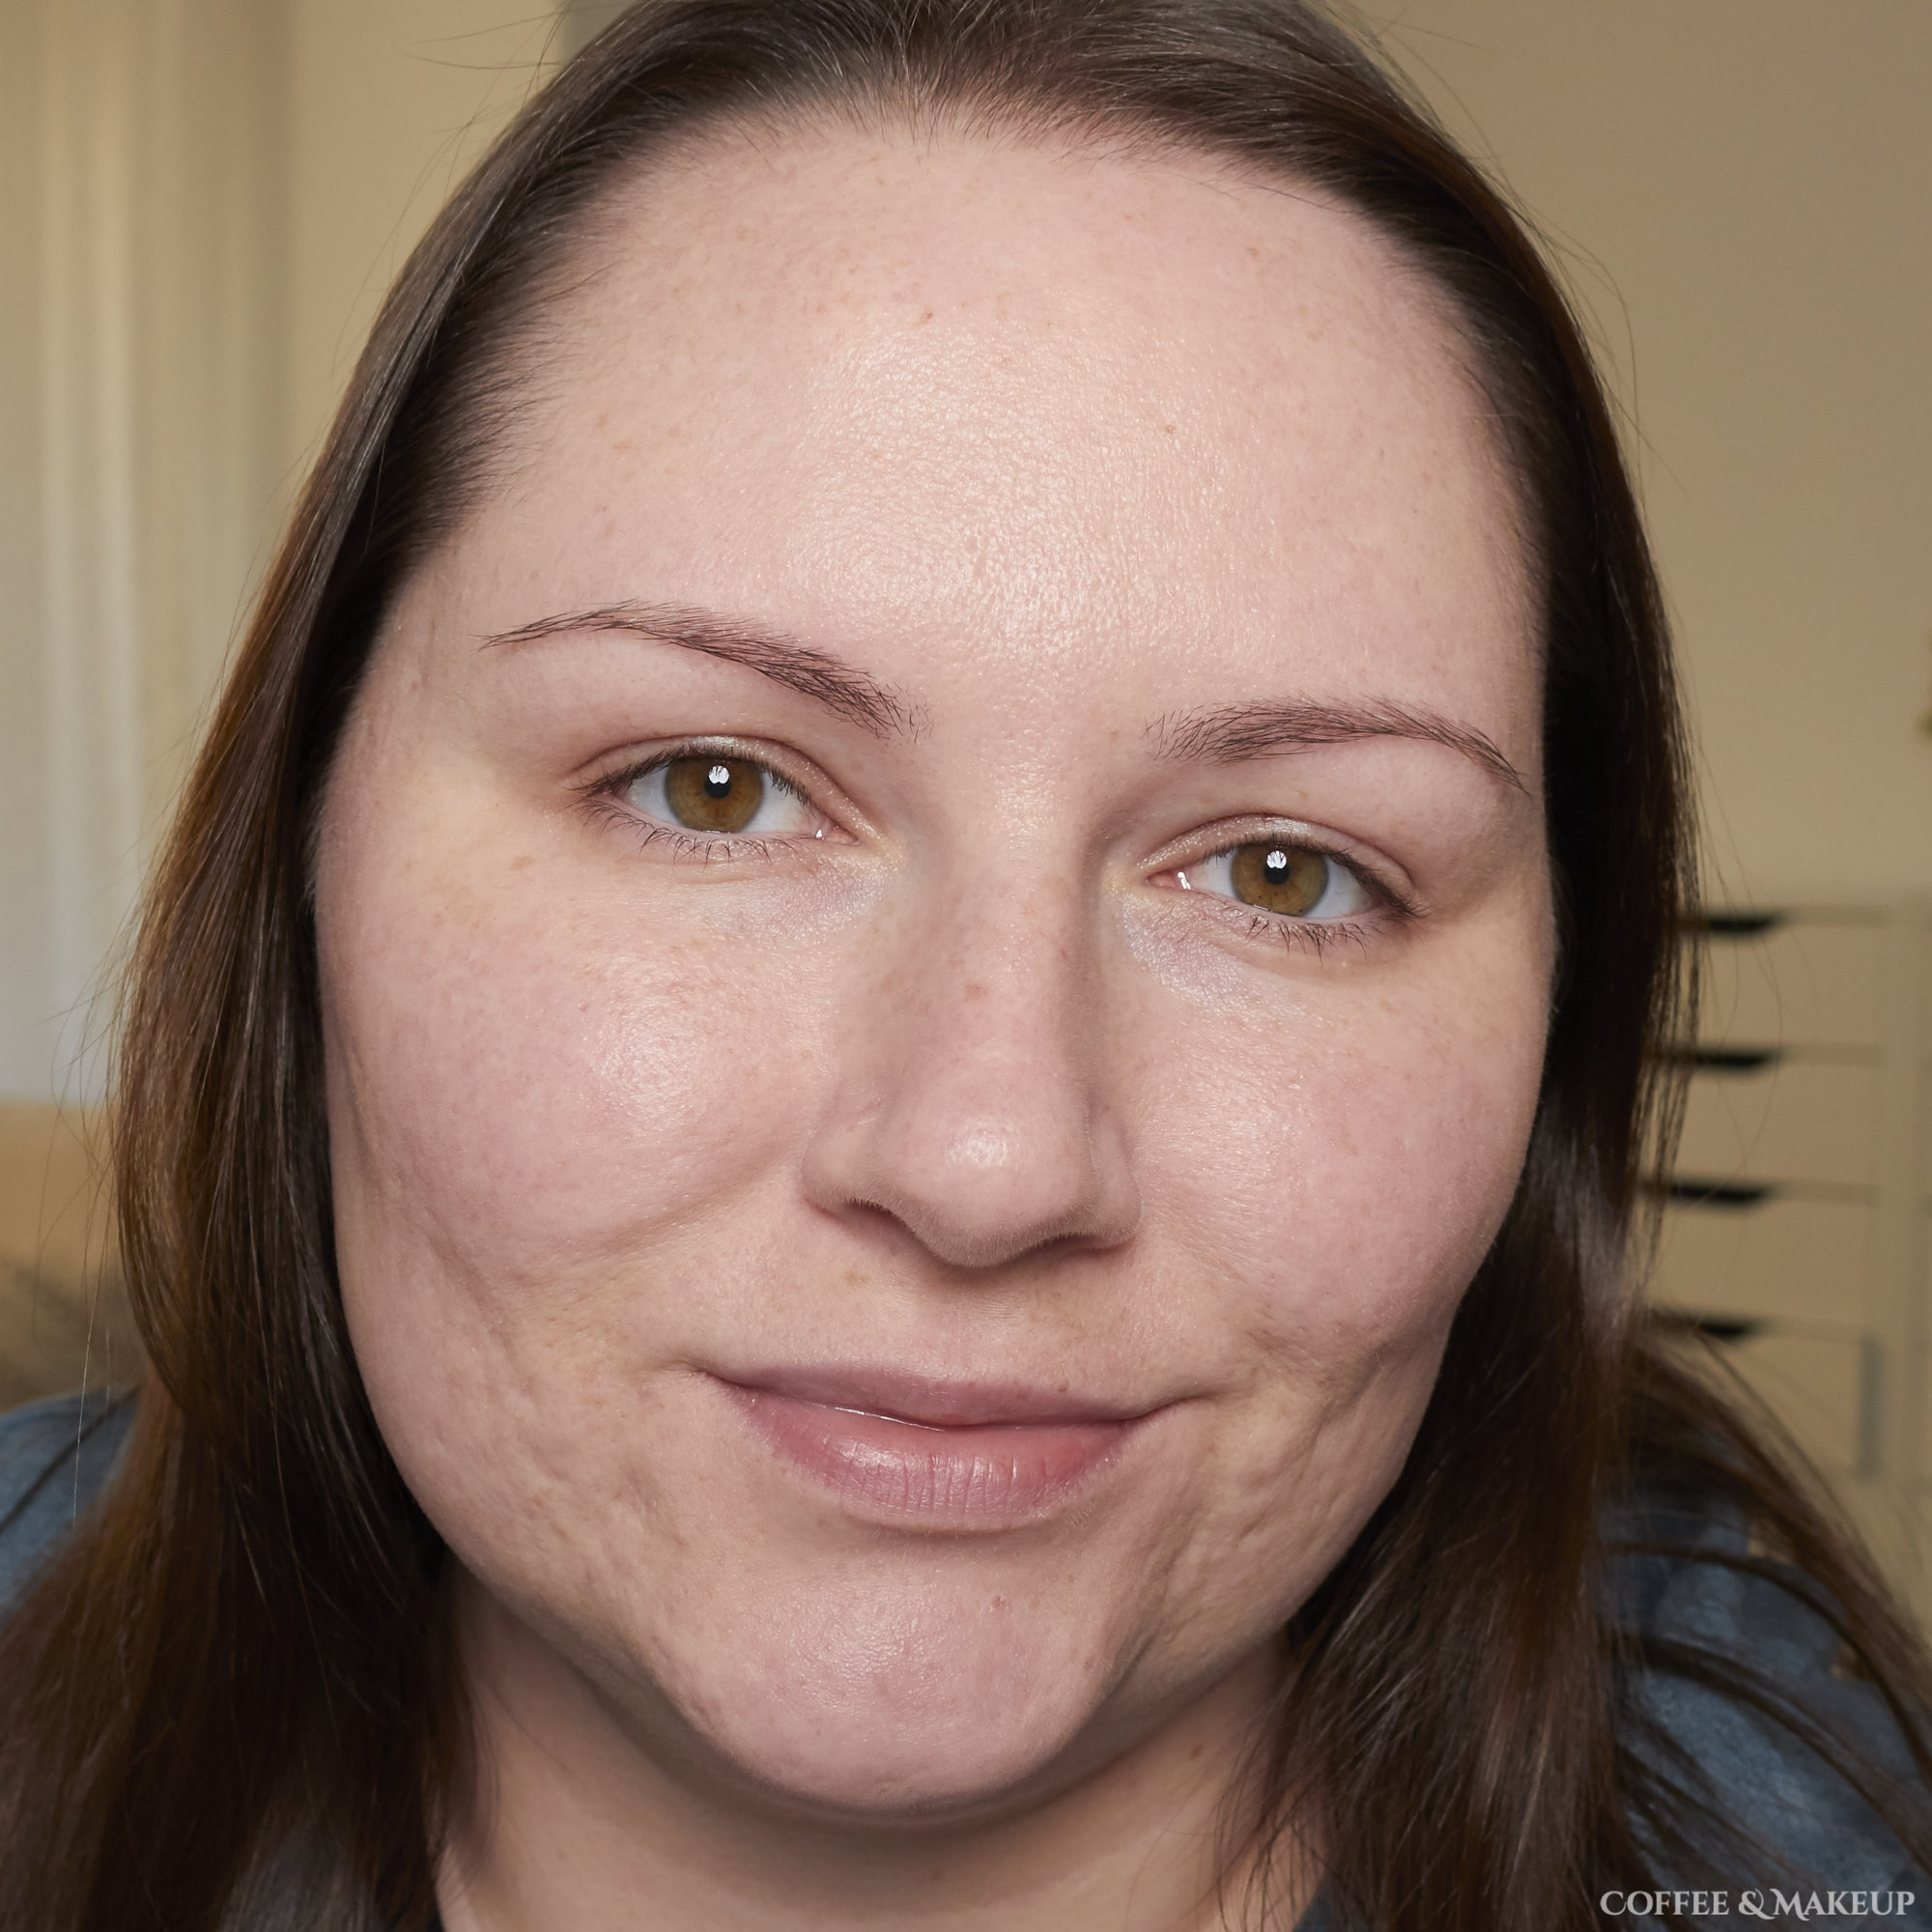 After | Dior Backstage Face and Body Foundation in 1N